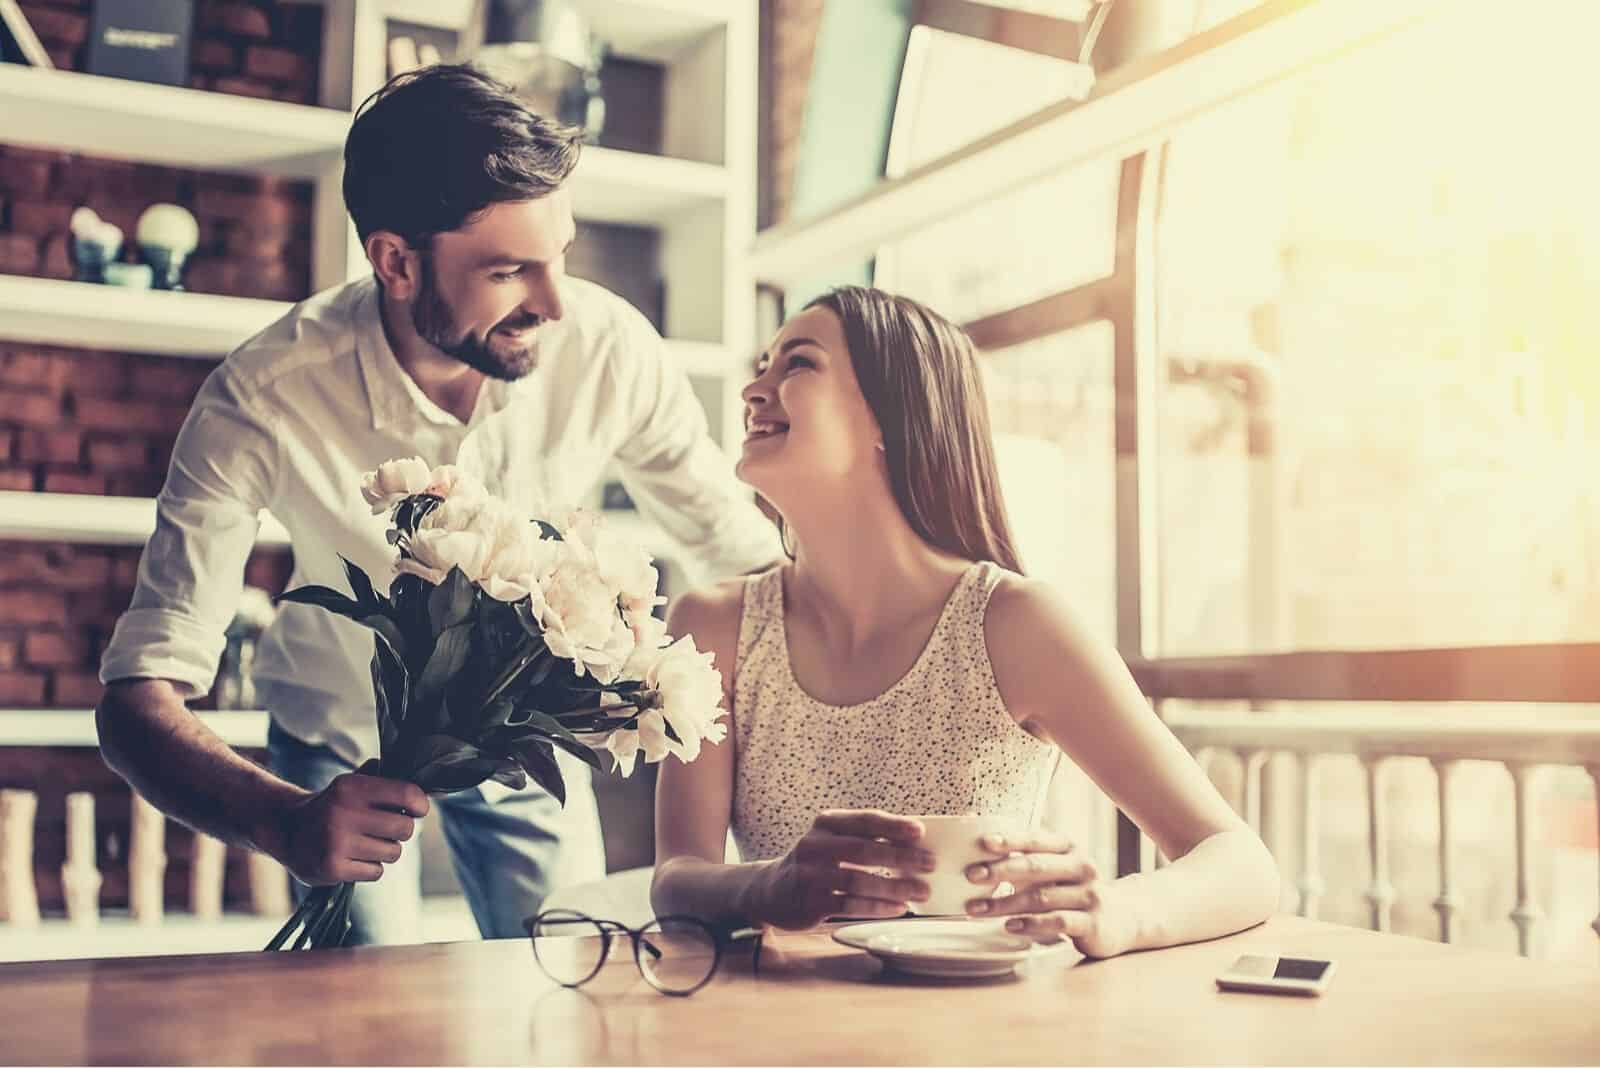 woman surprised by the flowers given by her boyfriend while waiting inside a cafe